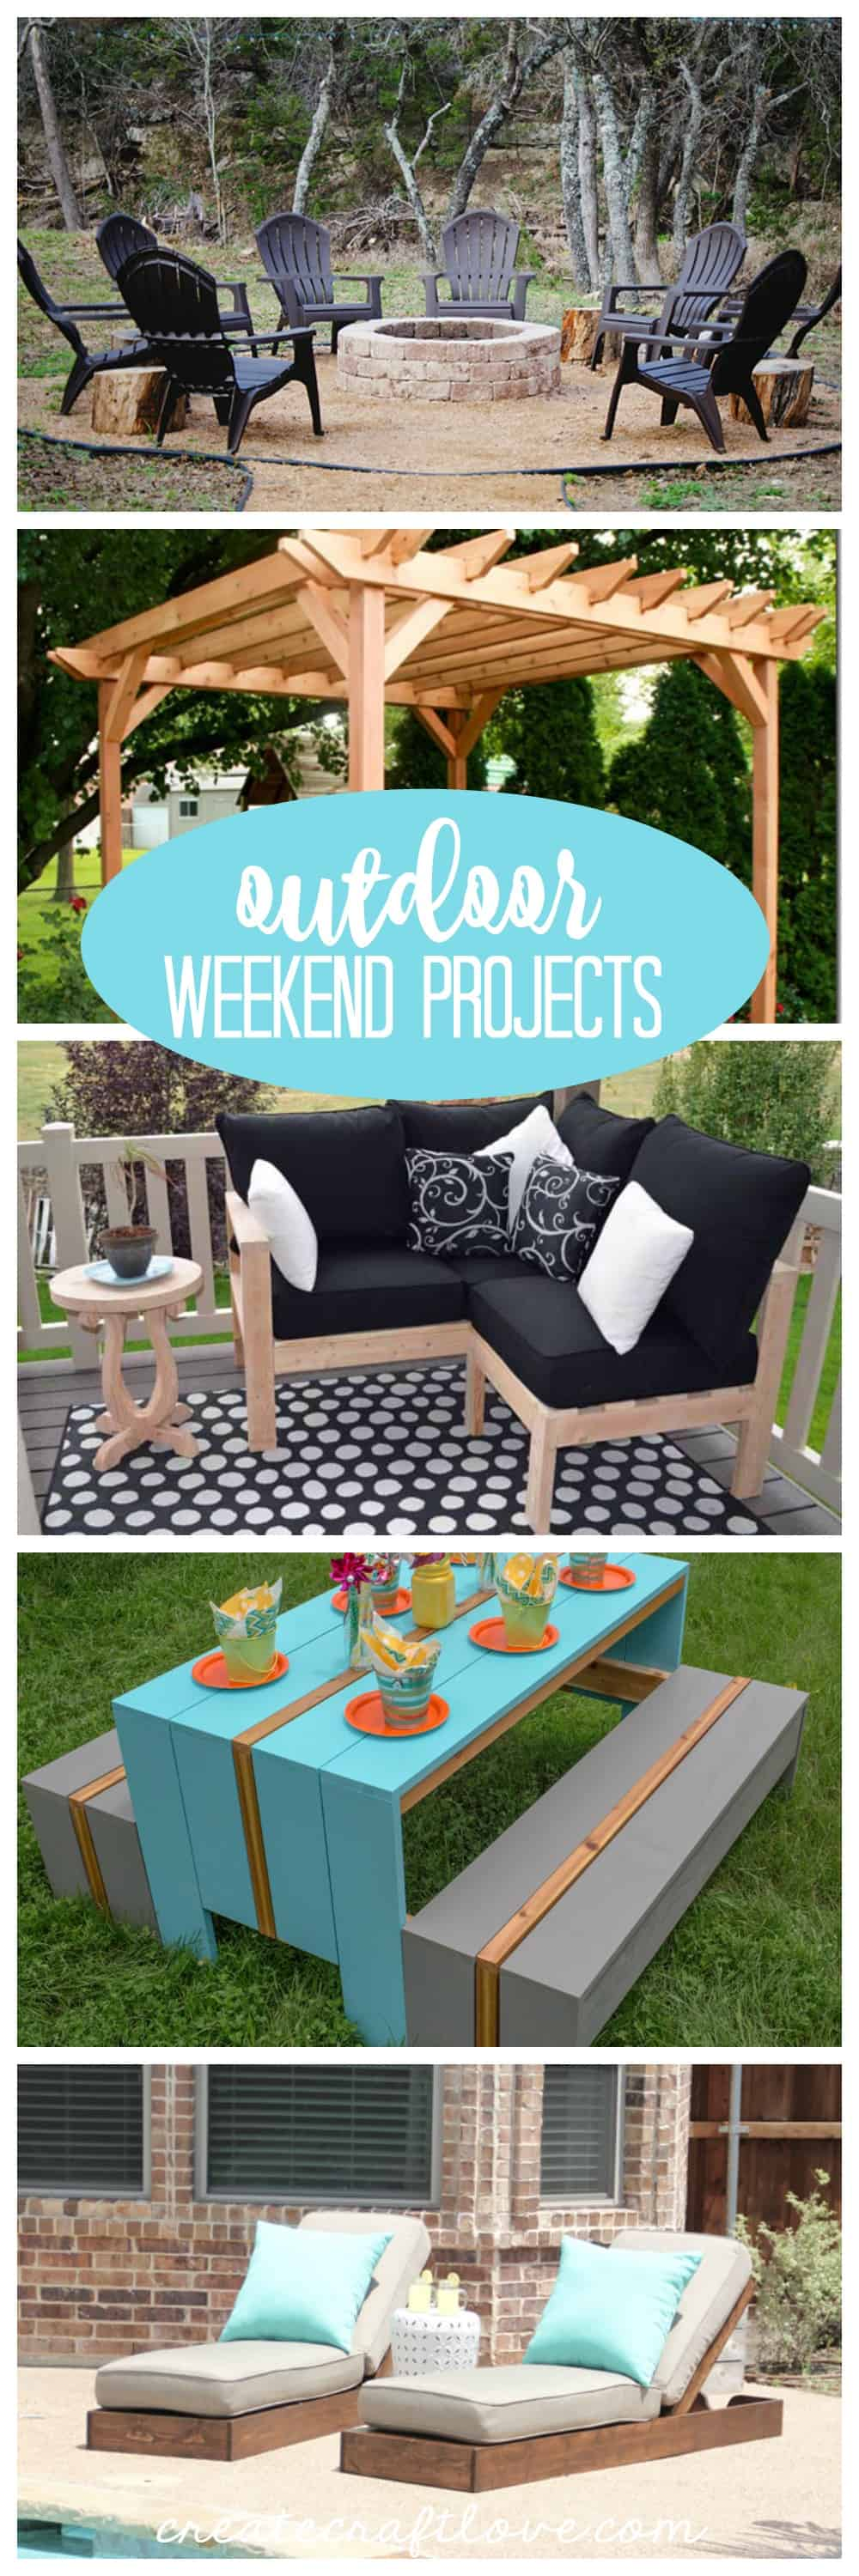 These Outdoor Weekend Projects won't take any time at all!